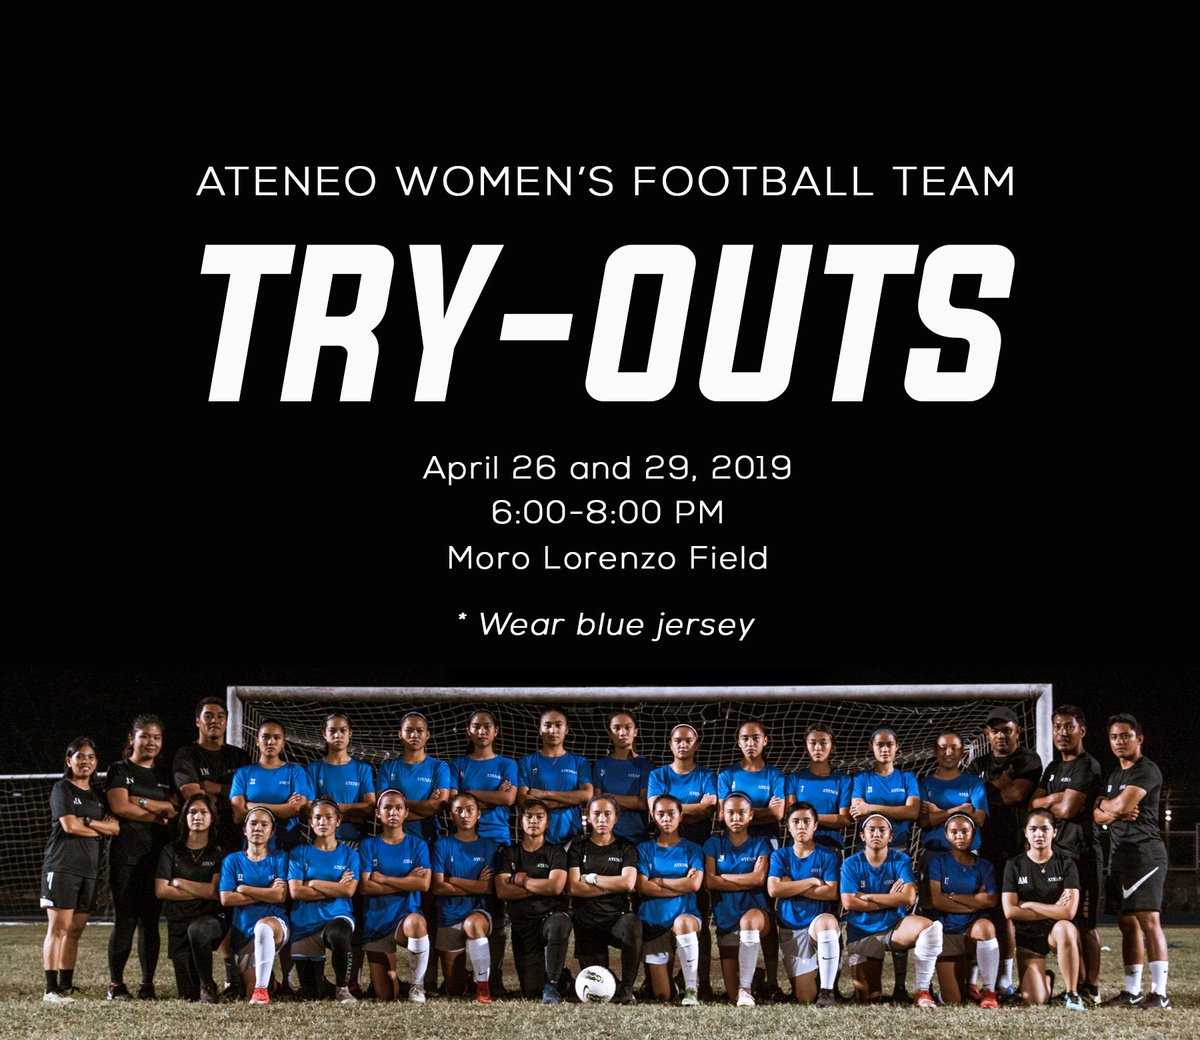 Don't miss out. Join our try-outs! The Ateneo Women's Football Team will be holding try outs this month. See you there! One big fight!  April 26 and 29, 2019 6-8 PM  Moro Lorenzo Field Wear blue jersey